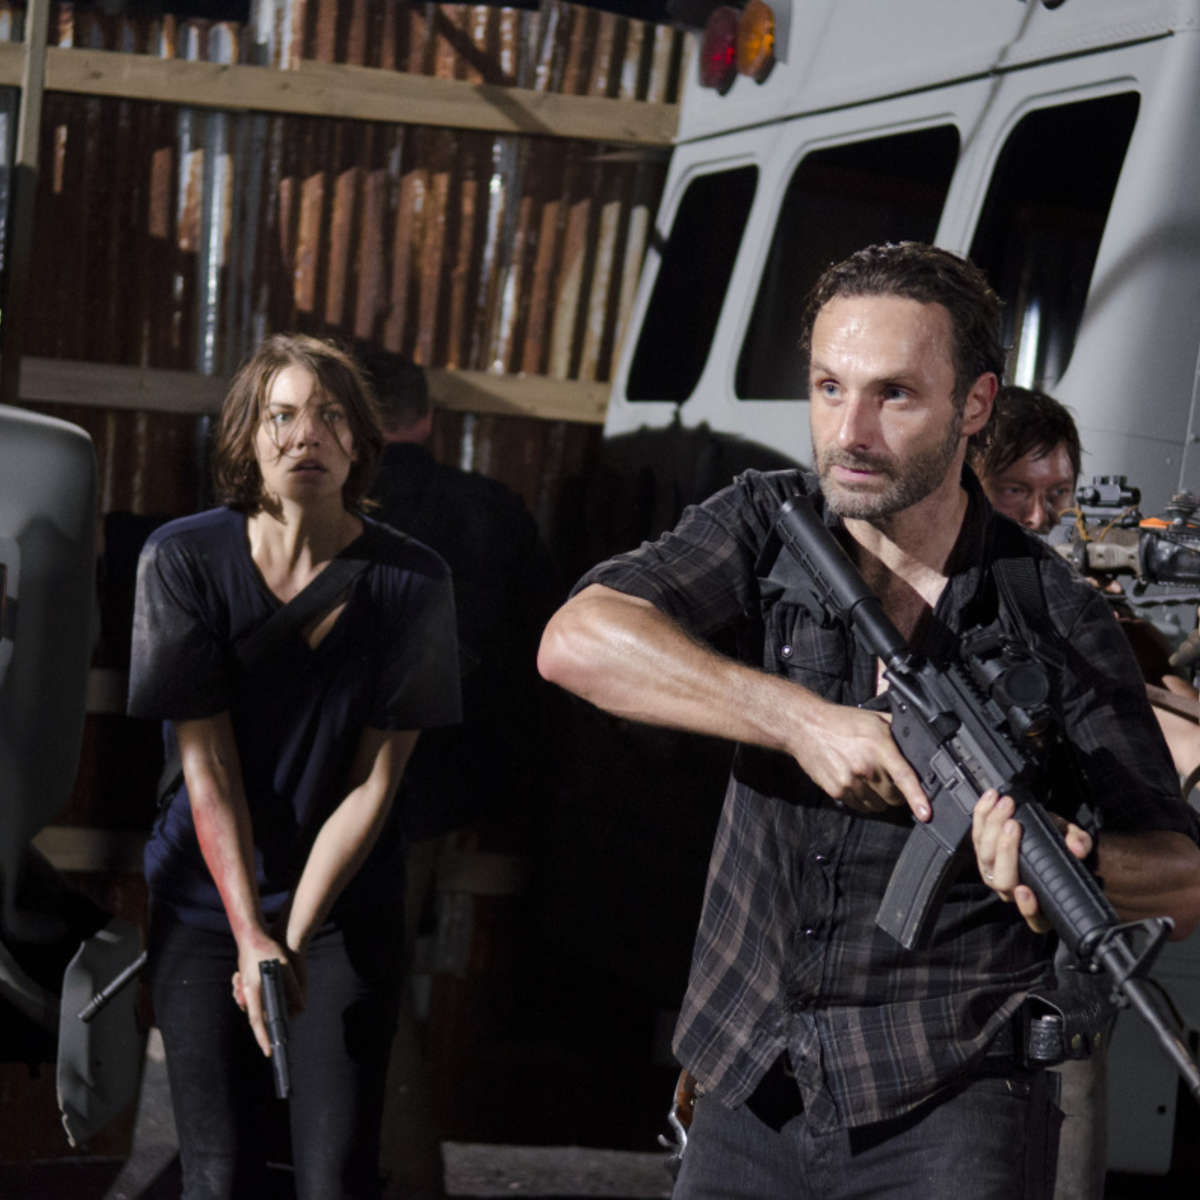 walking-dead-lauren-cohan-andrew-lincoln.jpg